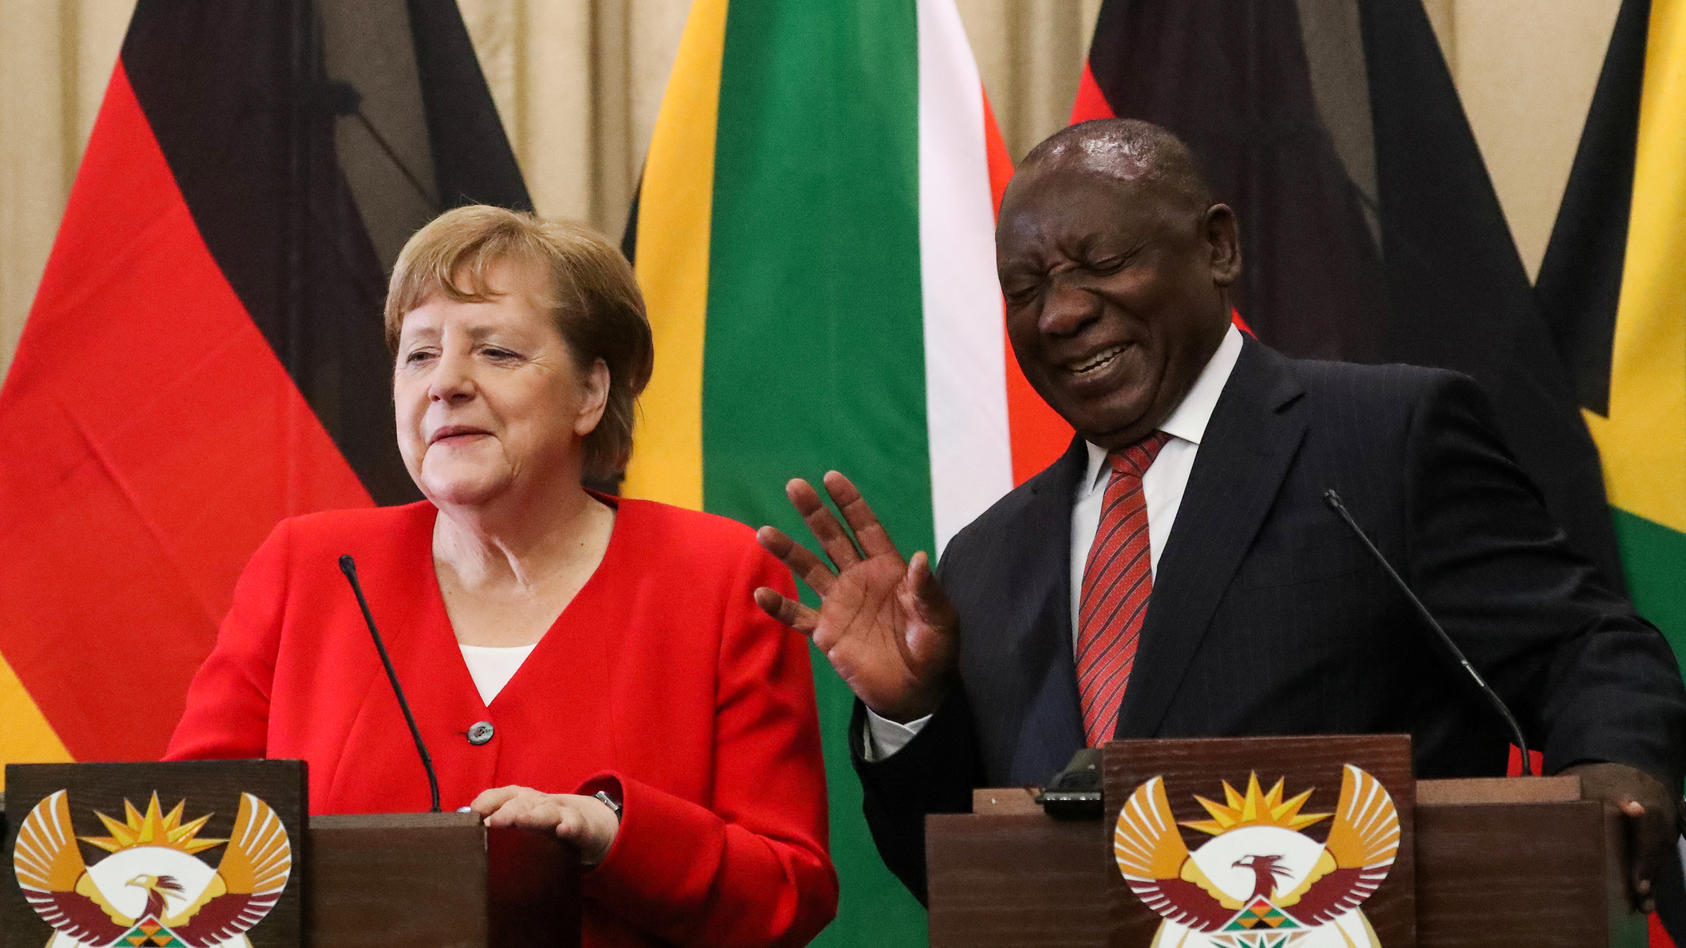 German Chancellor Angela Merkel reacts with South Africa's President Cyril Ramaphosa, during a media briefing at the Union Buildings in Pretoria